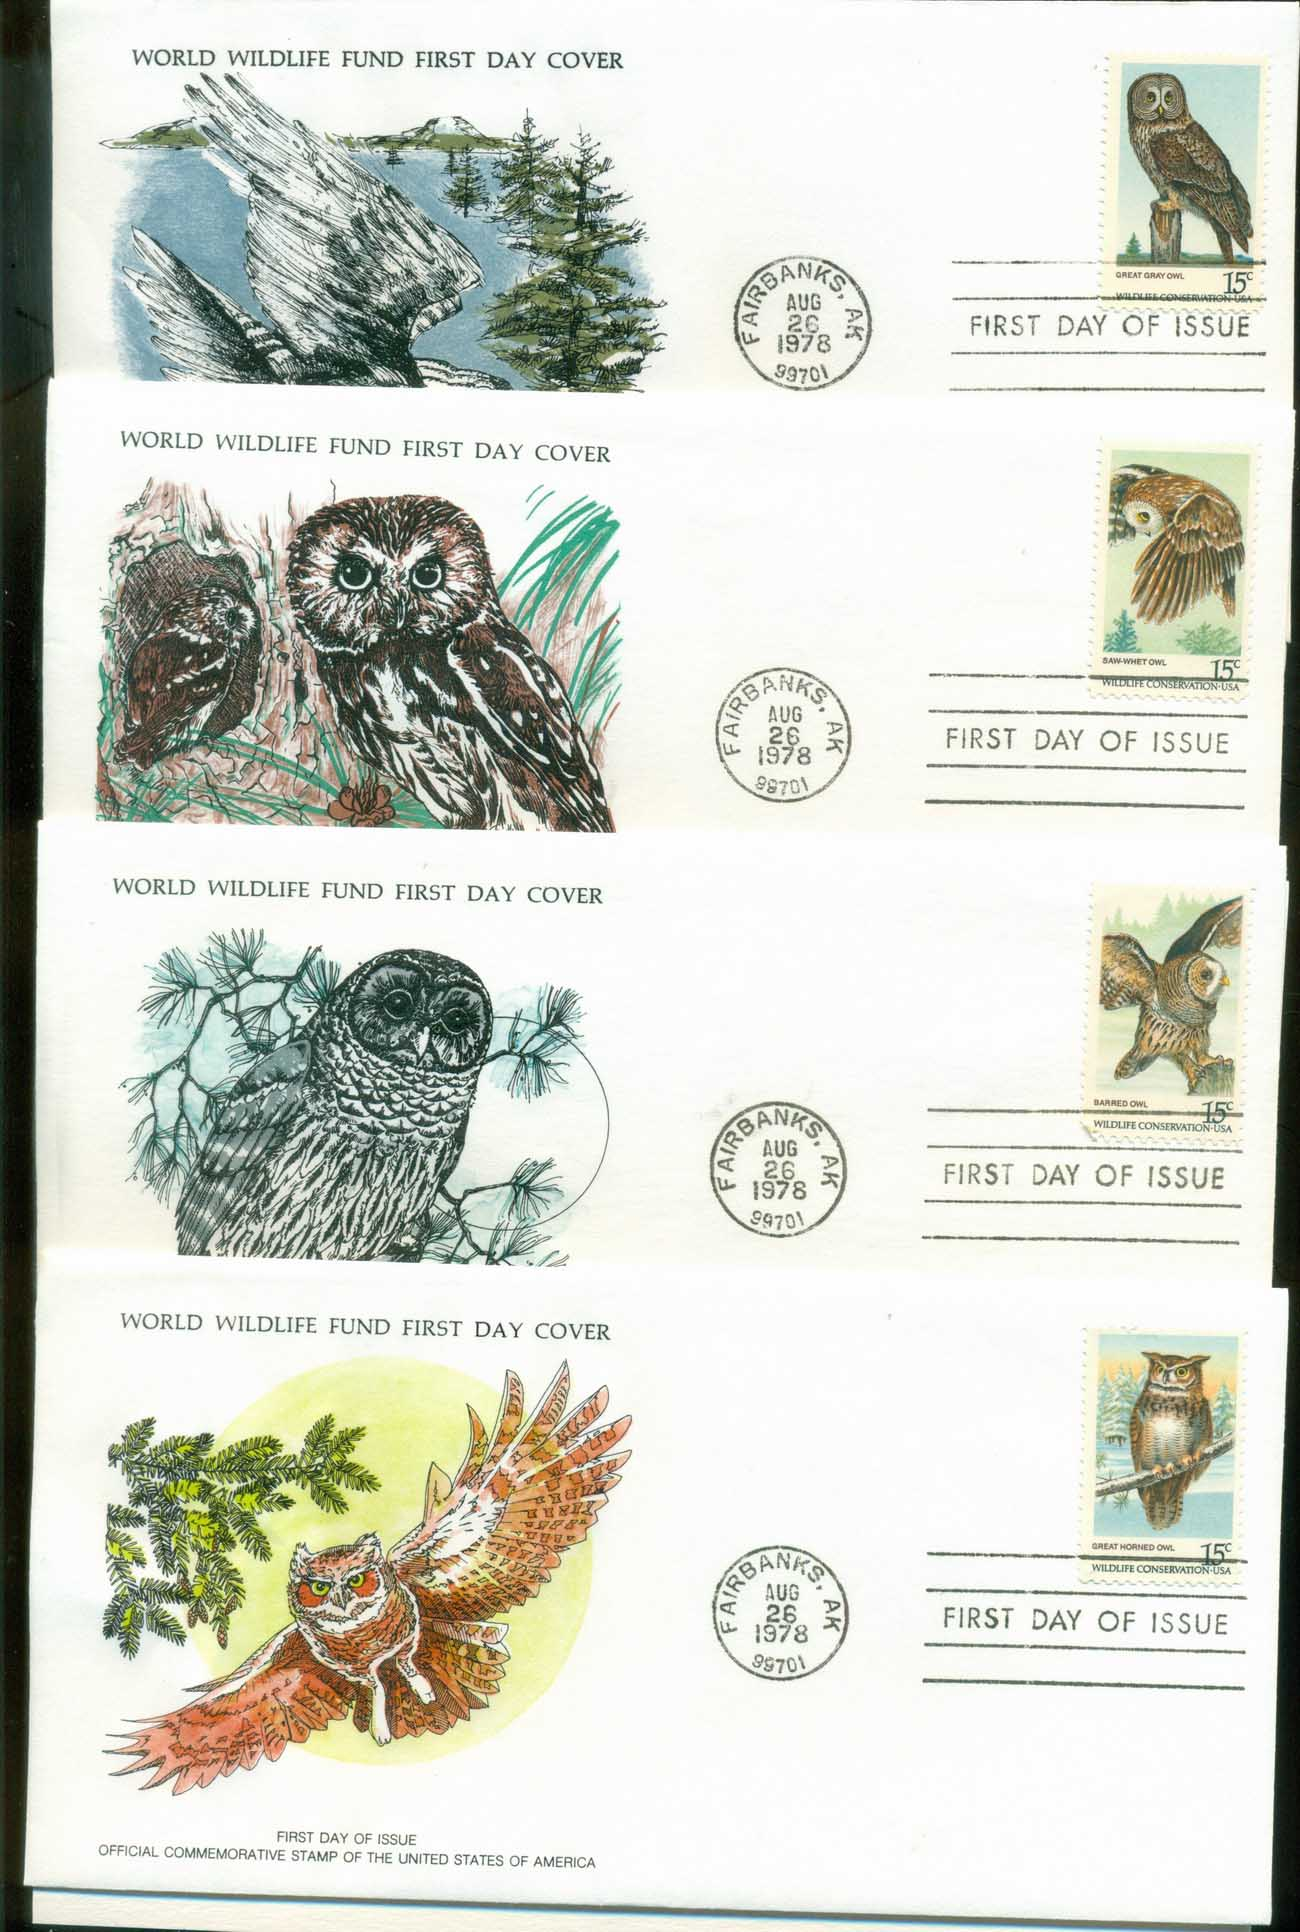 USA 1978 WWF,Owls, Birds ,Franlkin Mint (with inserts) 3xFDC lot79624